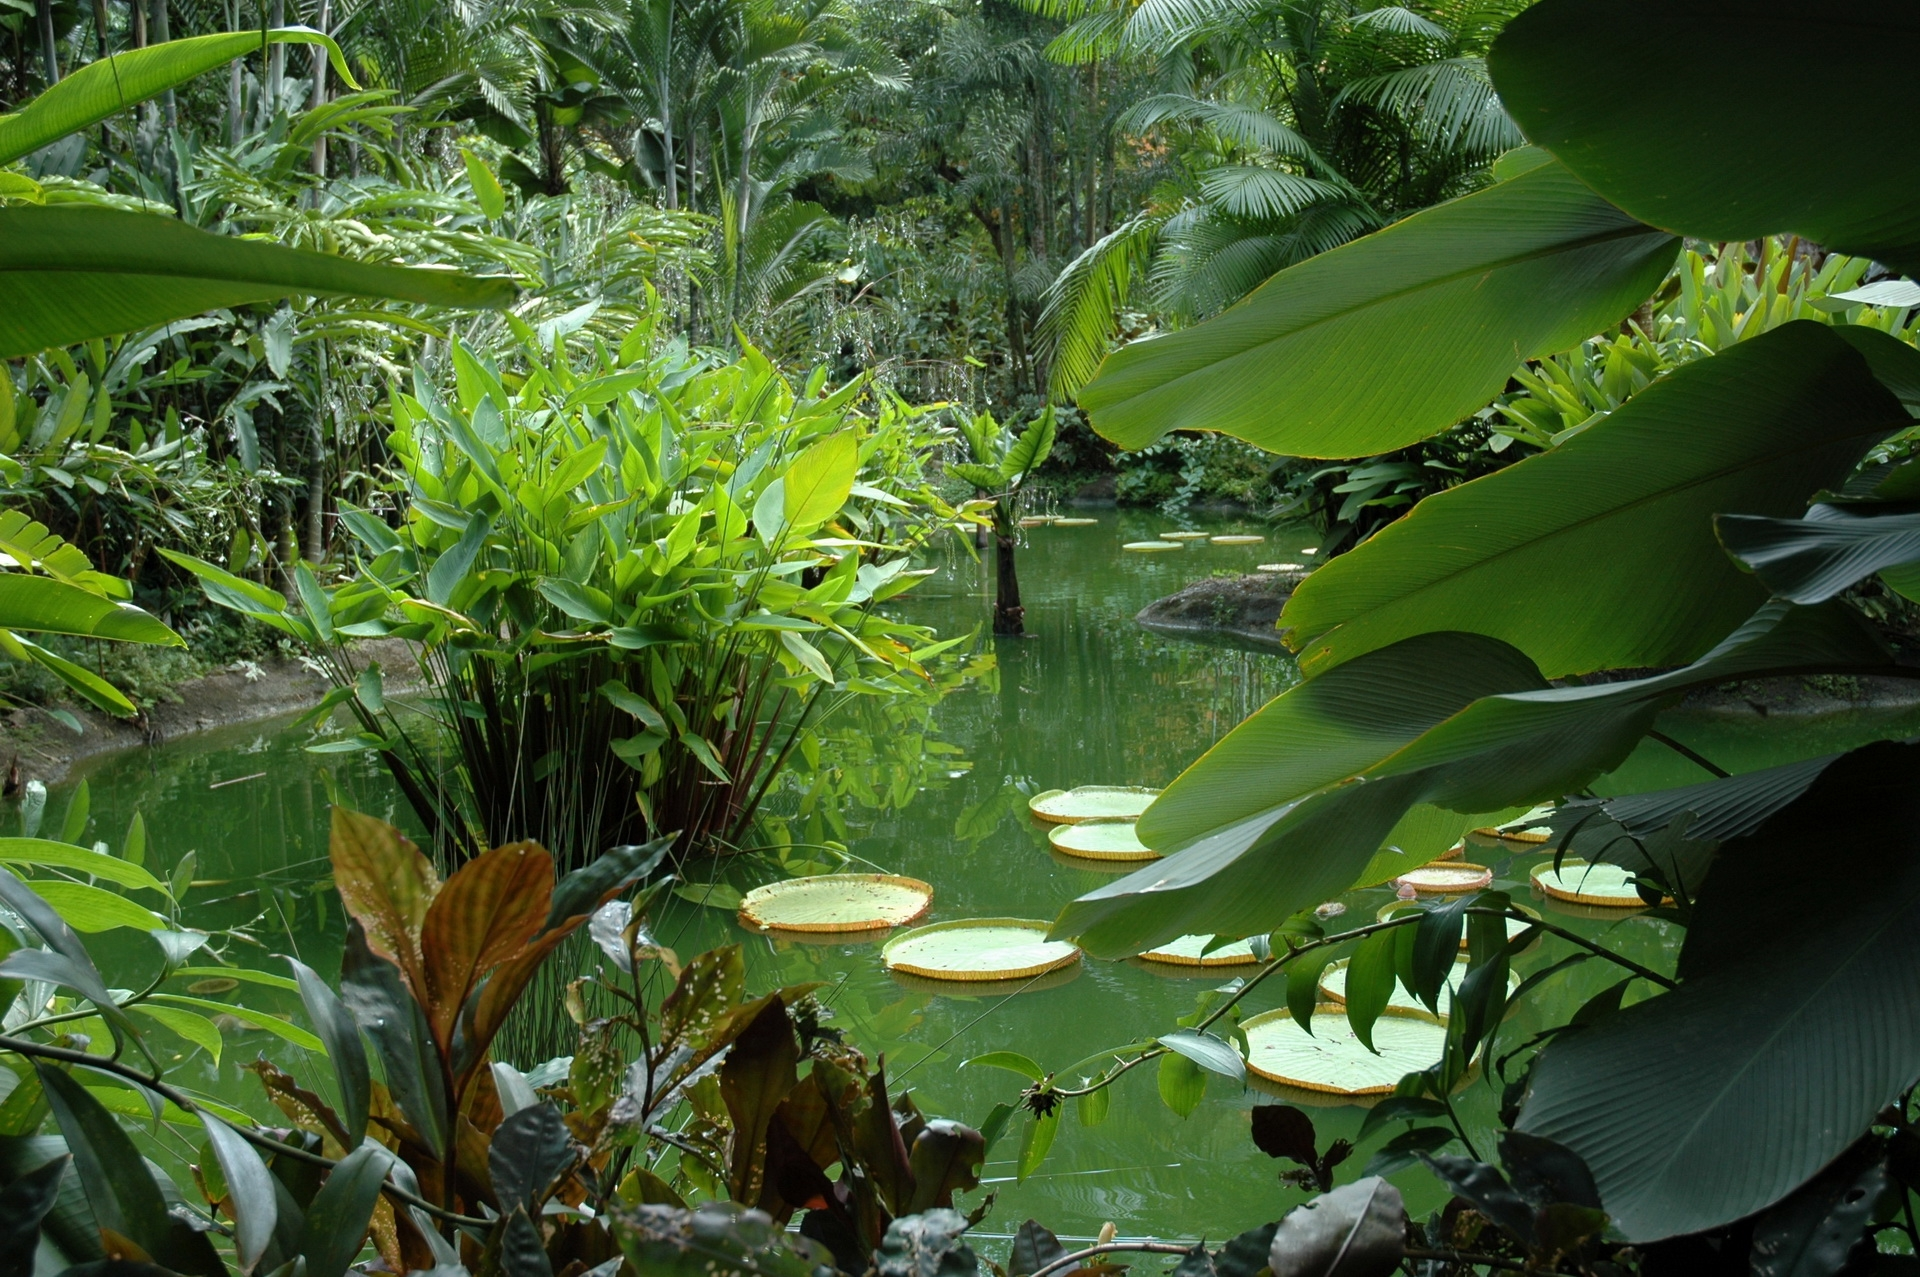 69571 download wallpaper Nature, Pond, Vegetation, Leaves, Juicy, Greens, Flora screensavers and pictures for free